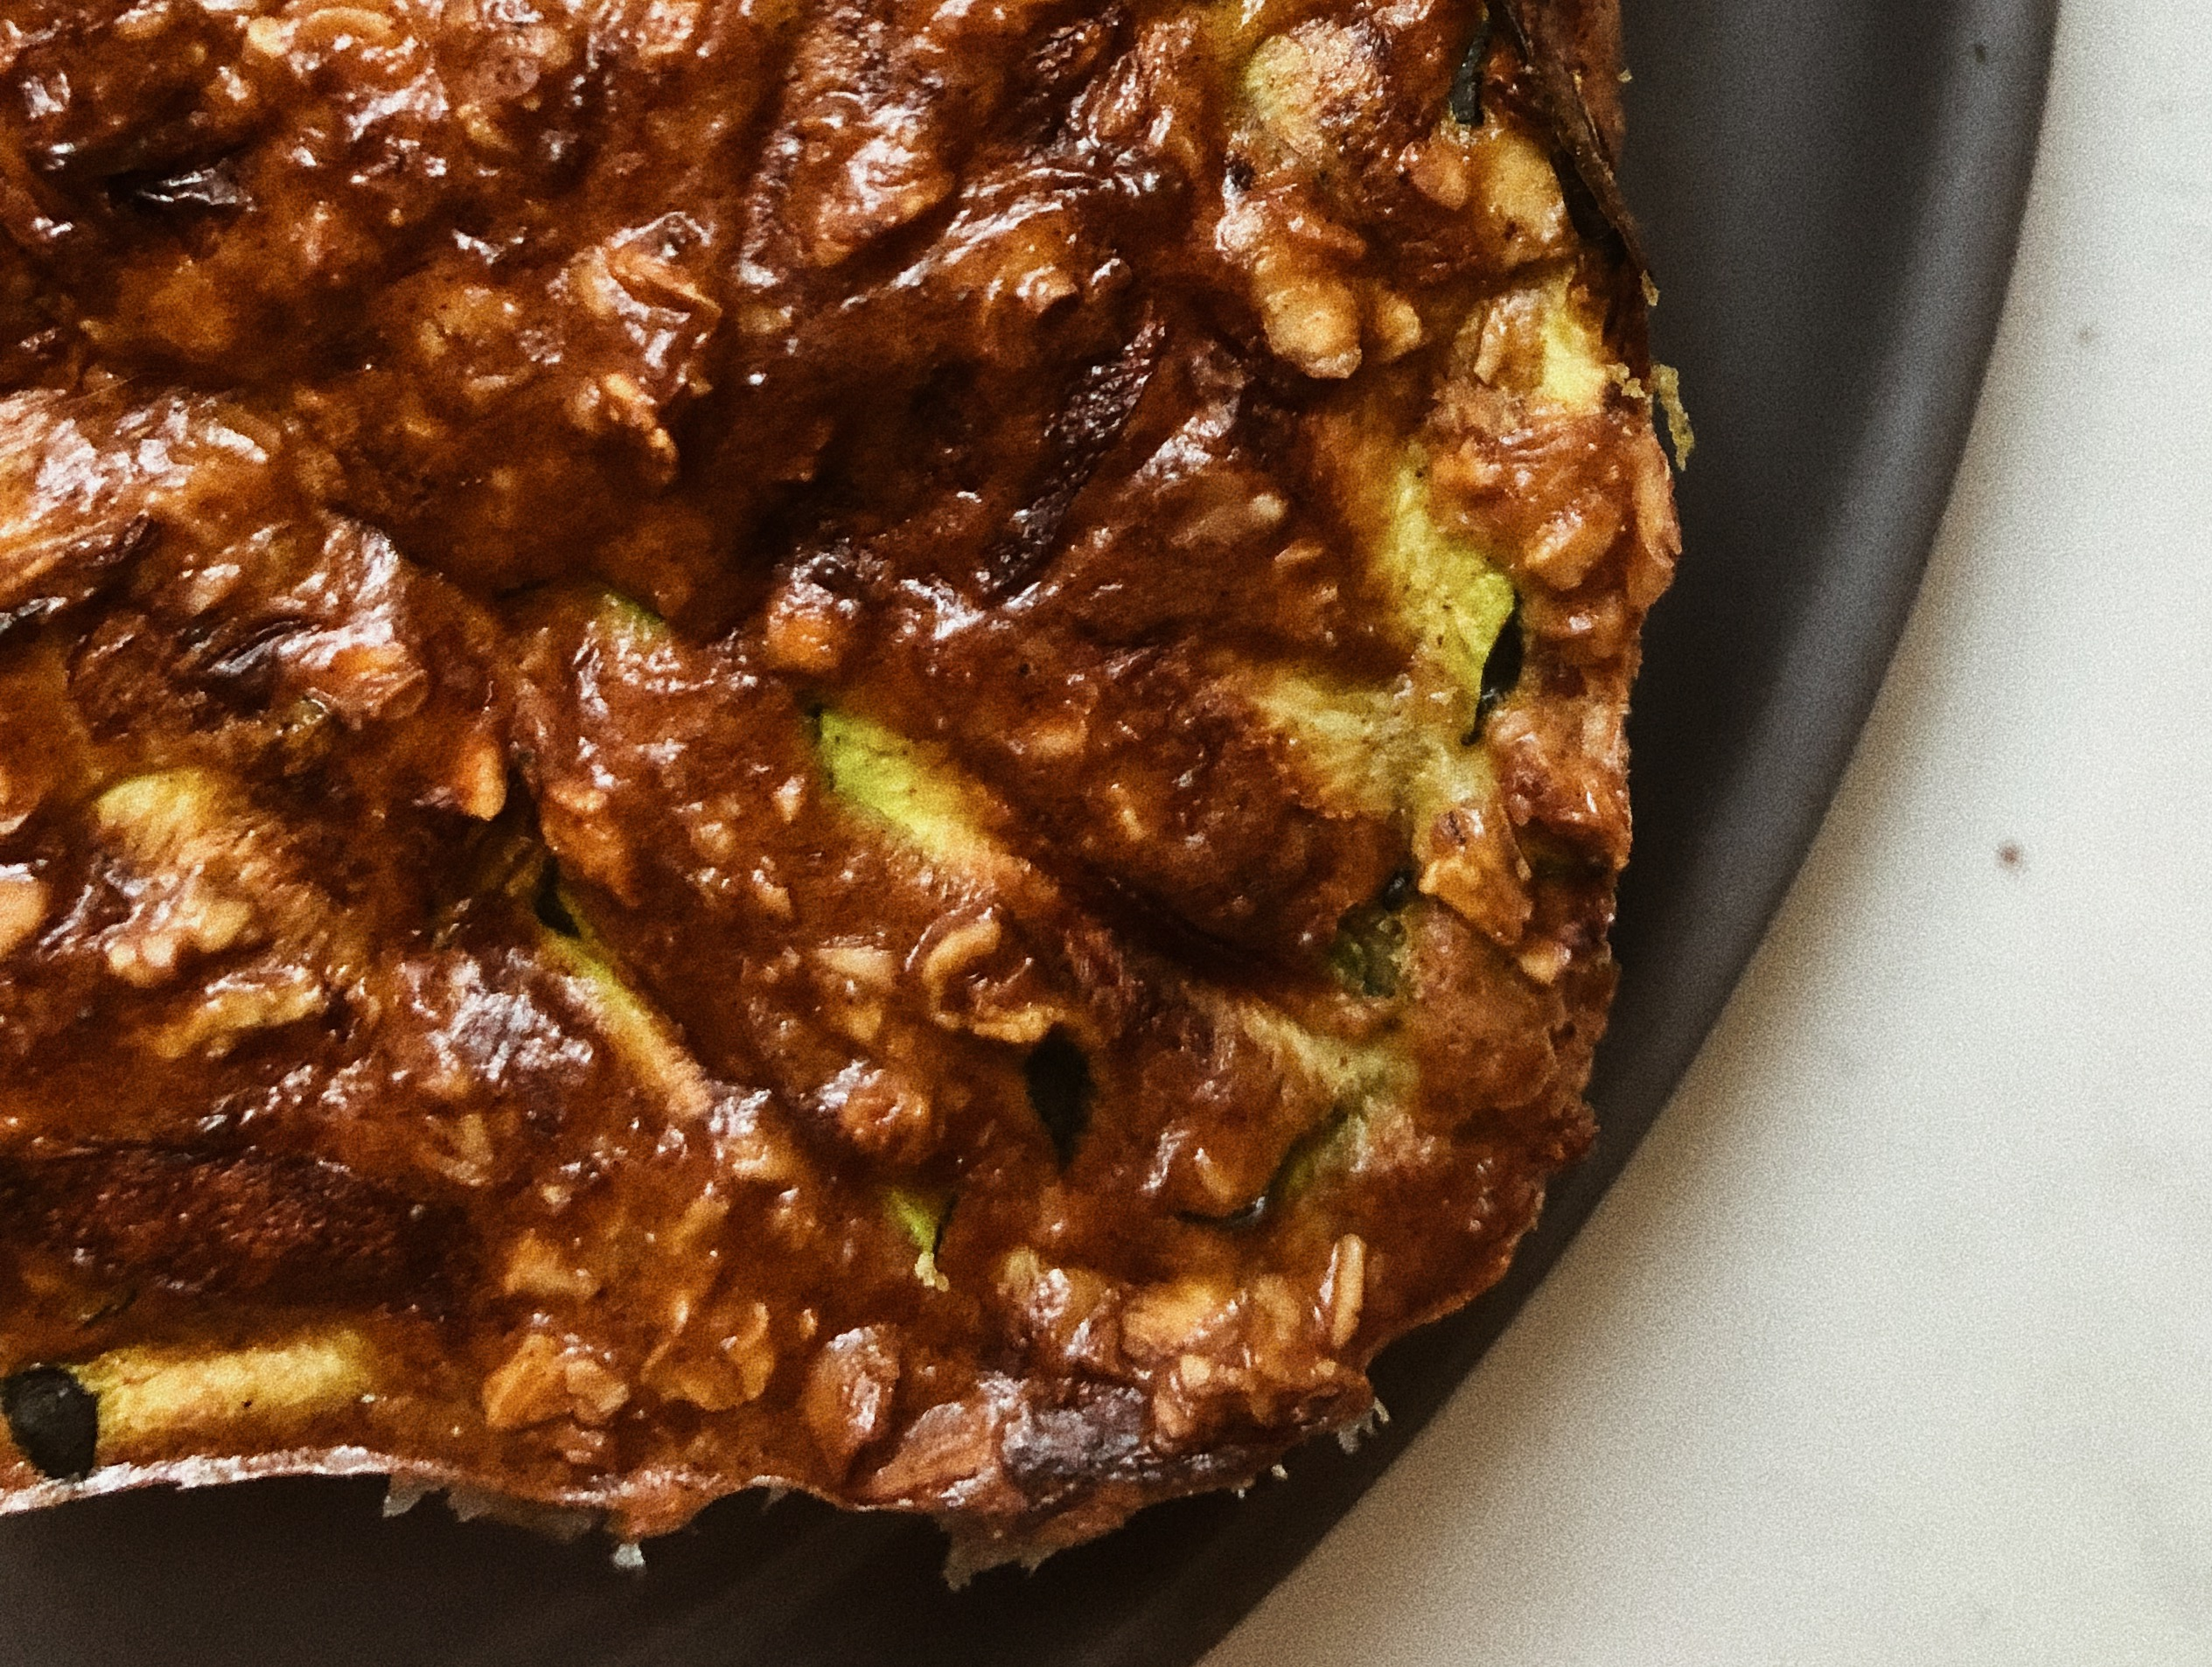 Baked Oatmeal with Turmeric, Coconut and Zucchini